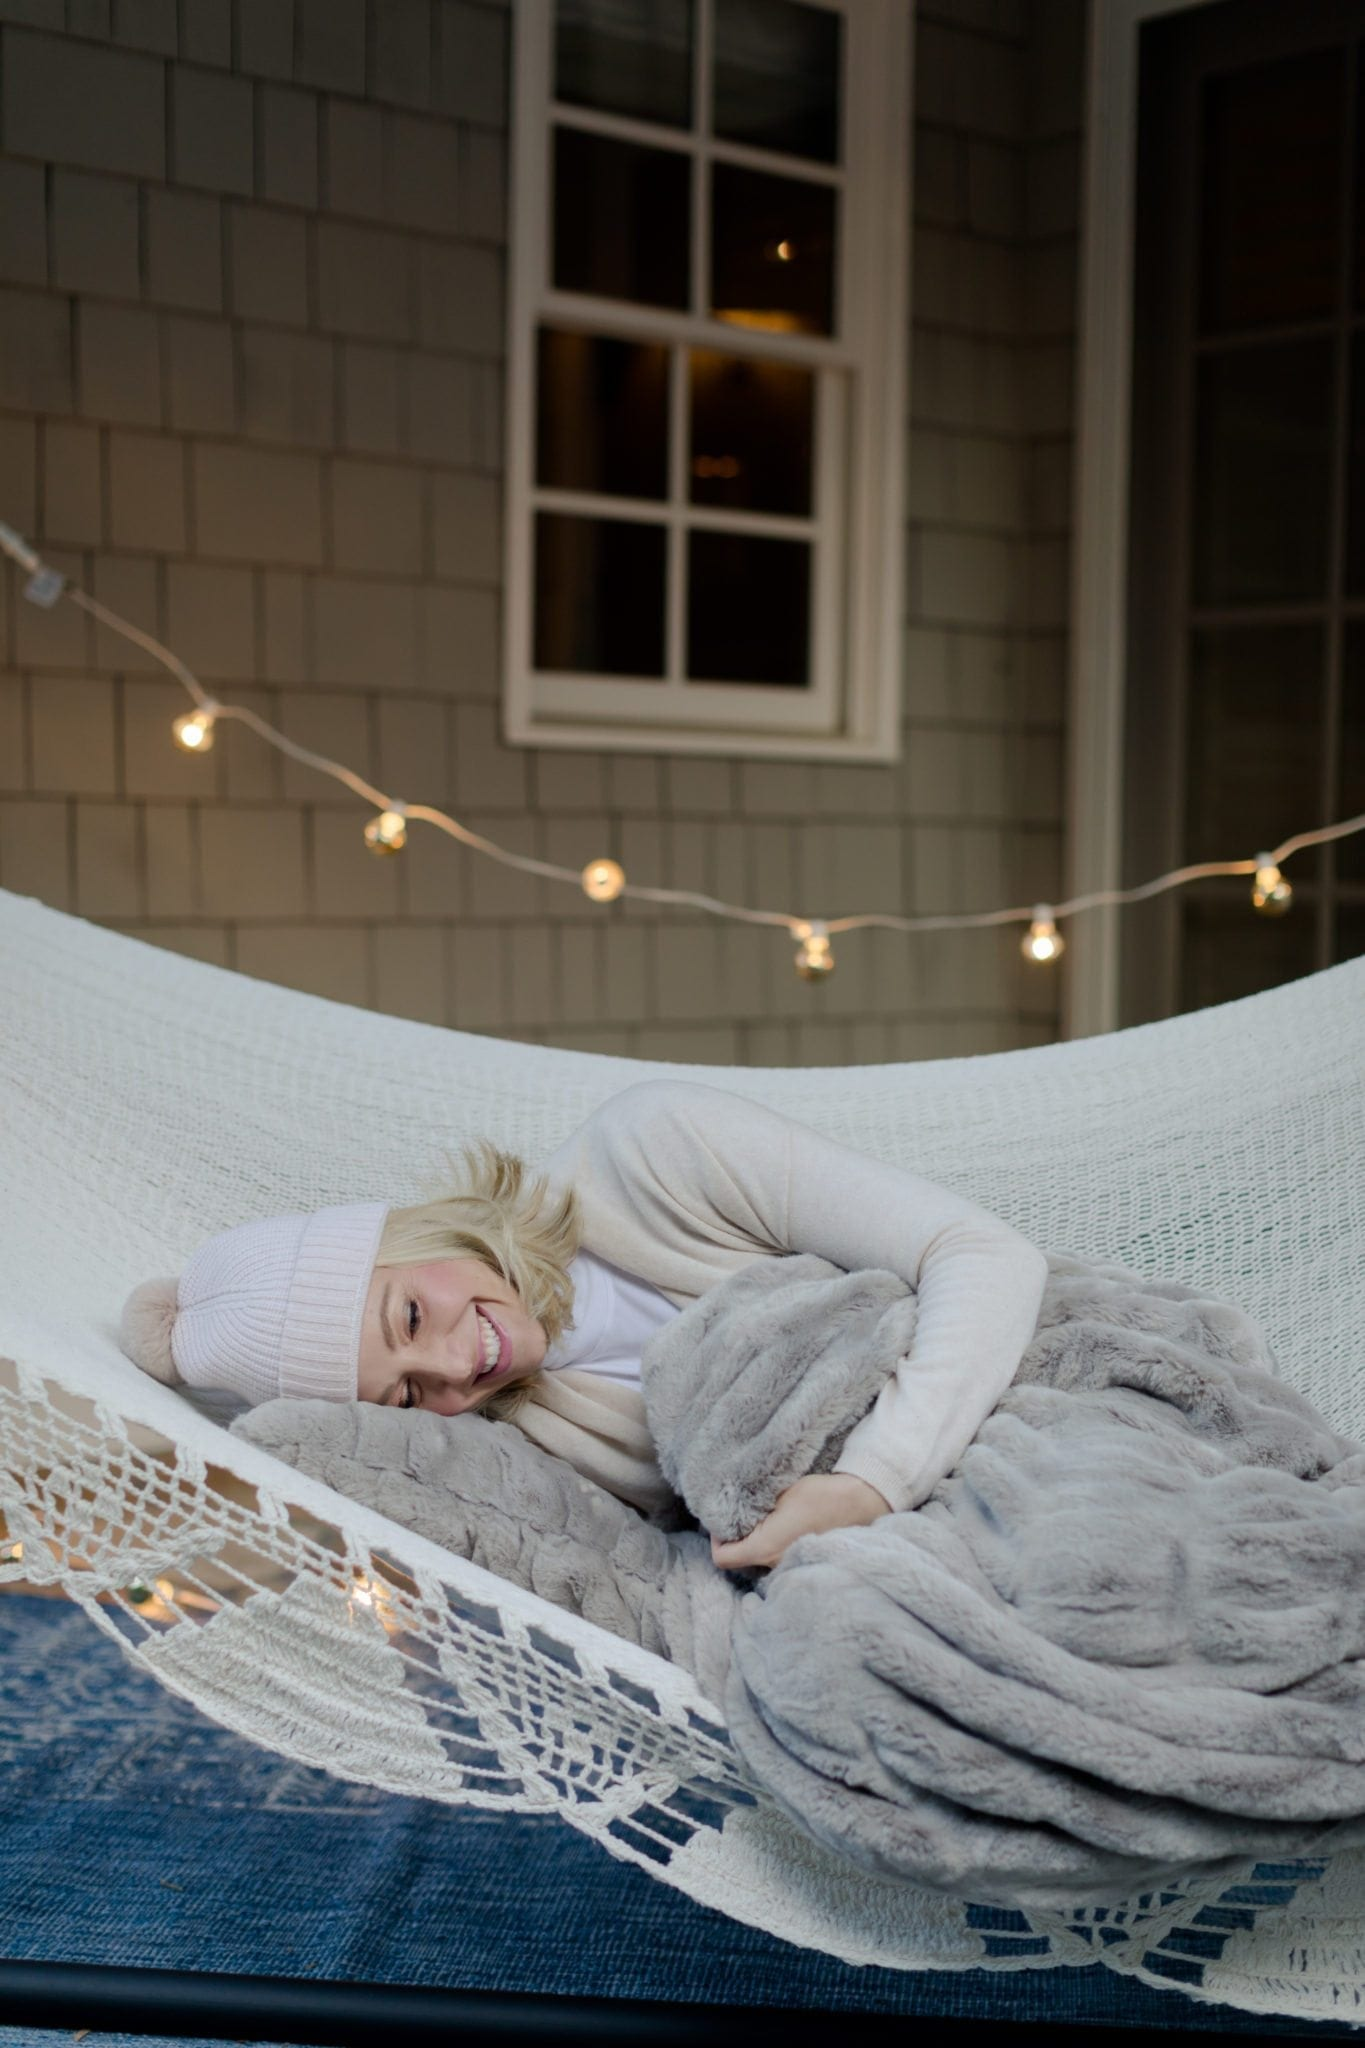 Fall home decor for outdoors. Outdoor hammock with soft pink beanie hat and cozy blanket.